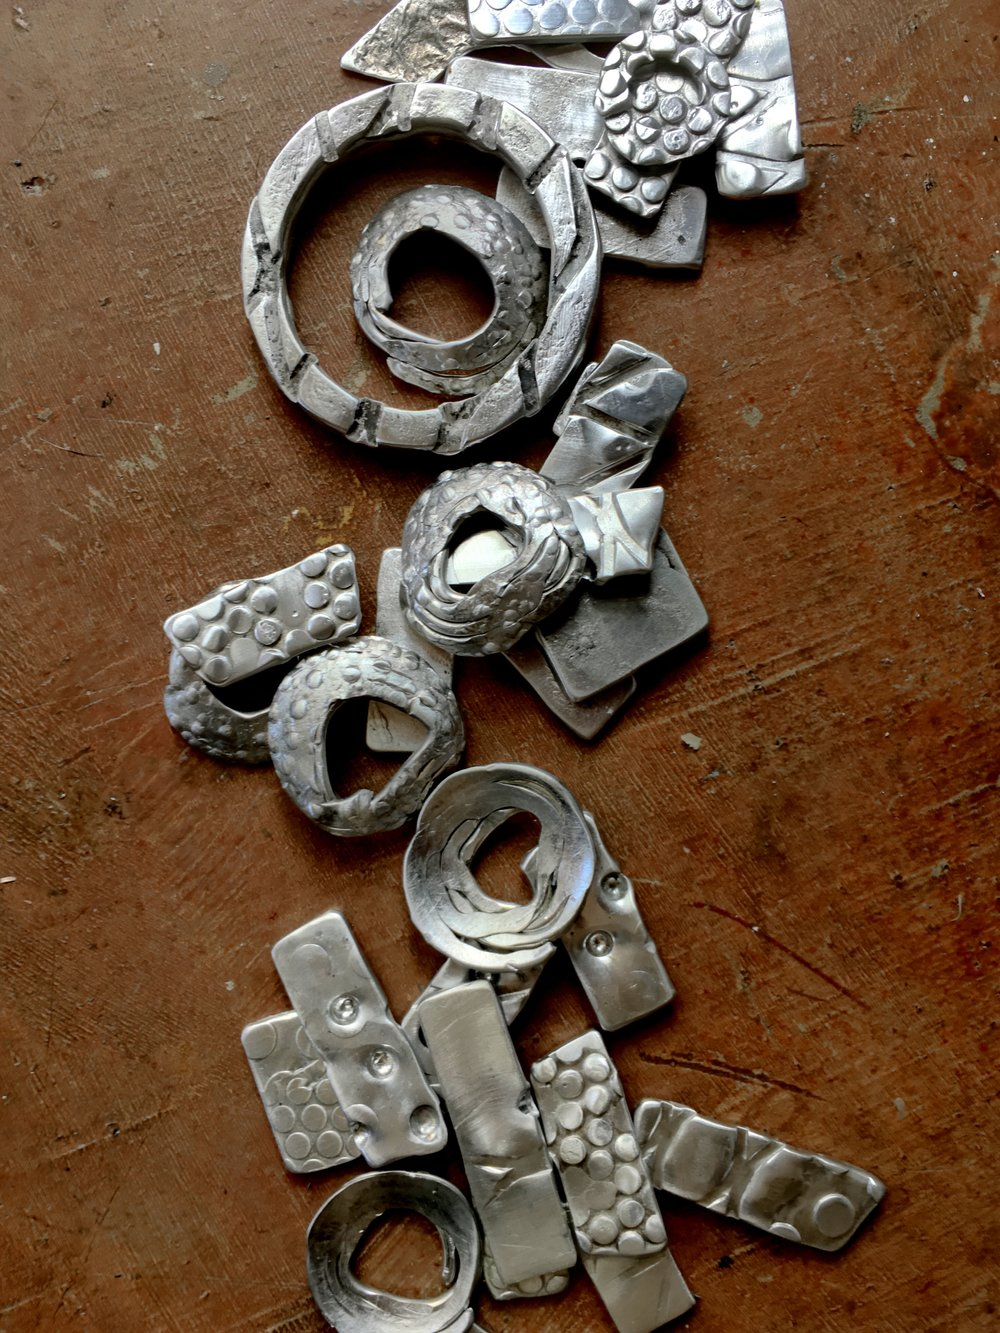 About 25 years ago I made a lot of asymmetrical jewelry and I'm going to channel some of that into some new pieces.  For now just making 'roadkill metal' components and thinking I need to research scrap metal/leftover components places to scour for new things.